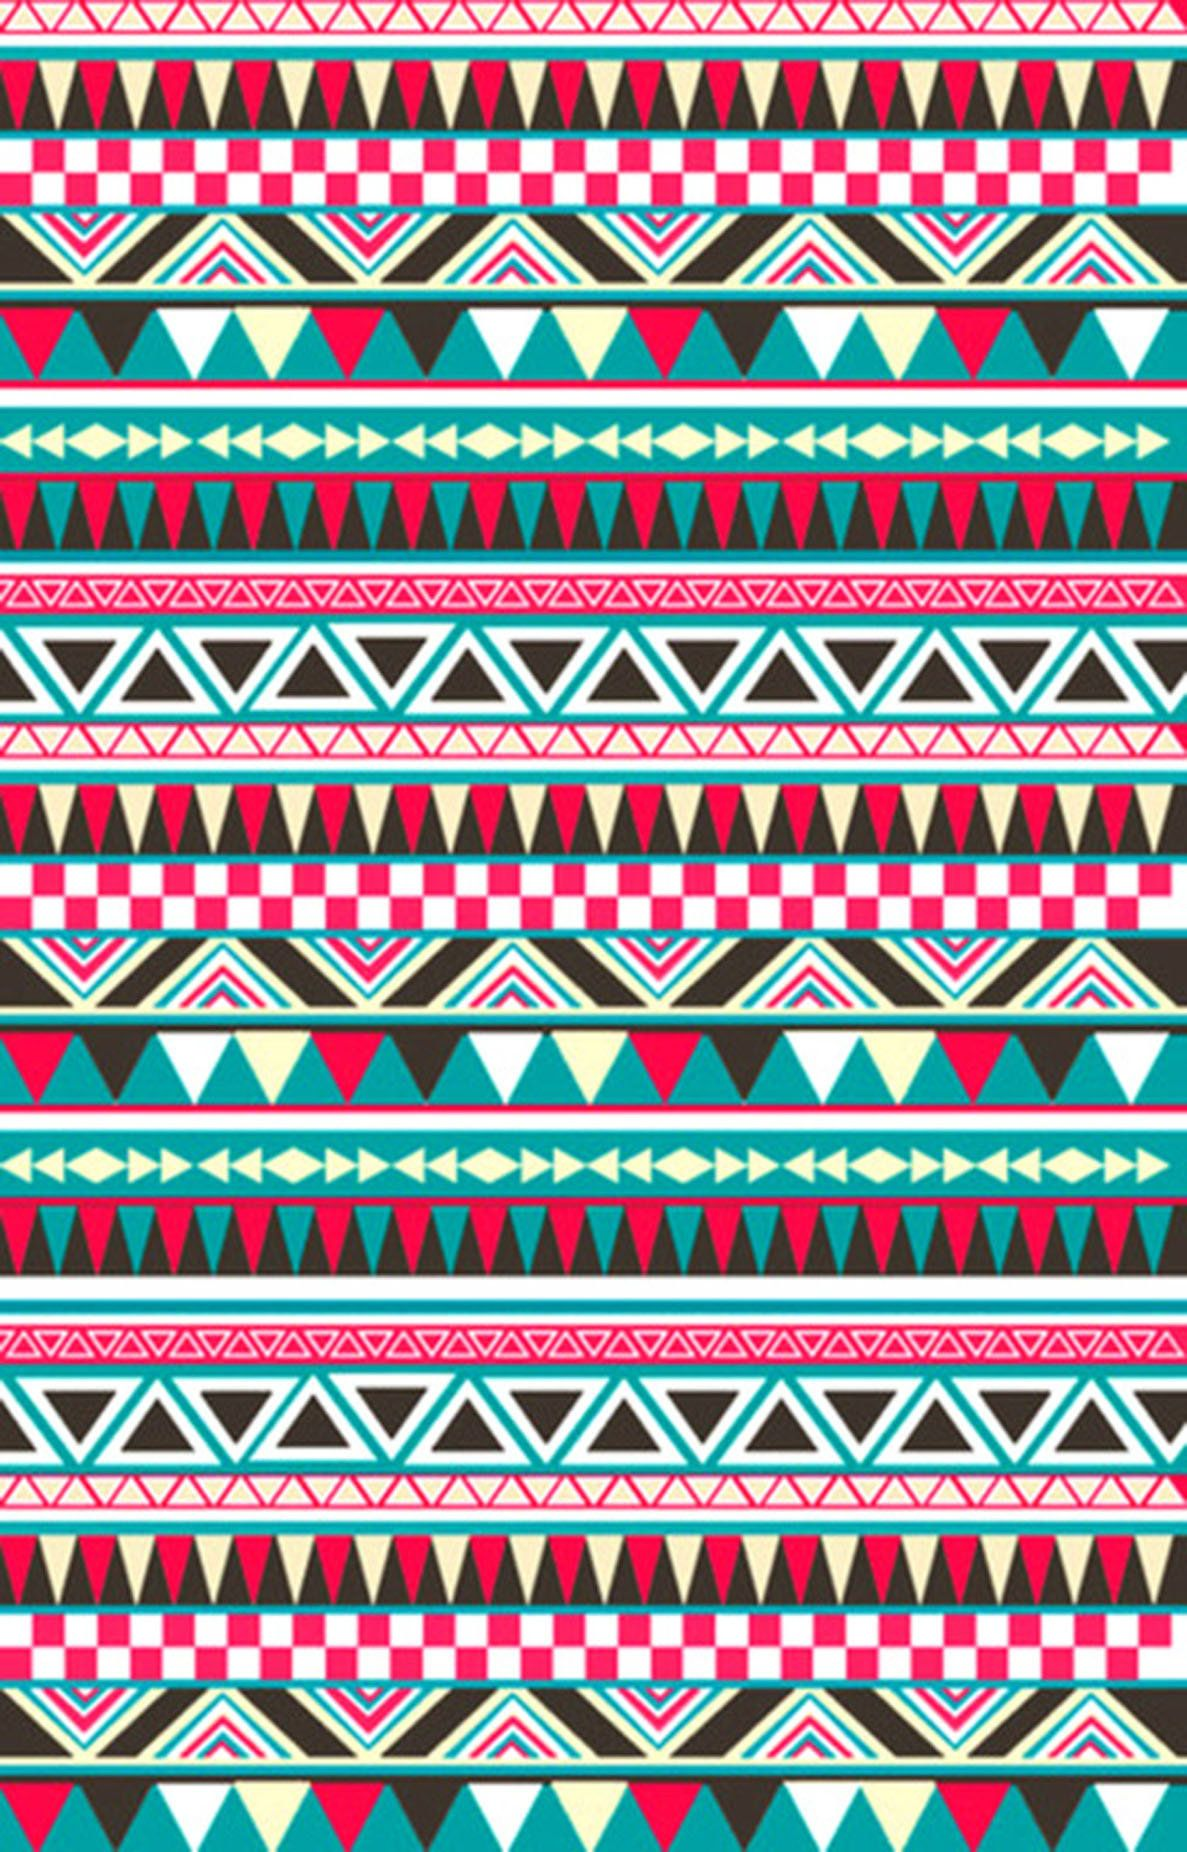 aztec pattern wallpaper tumblr wwwimgkidcom the